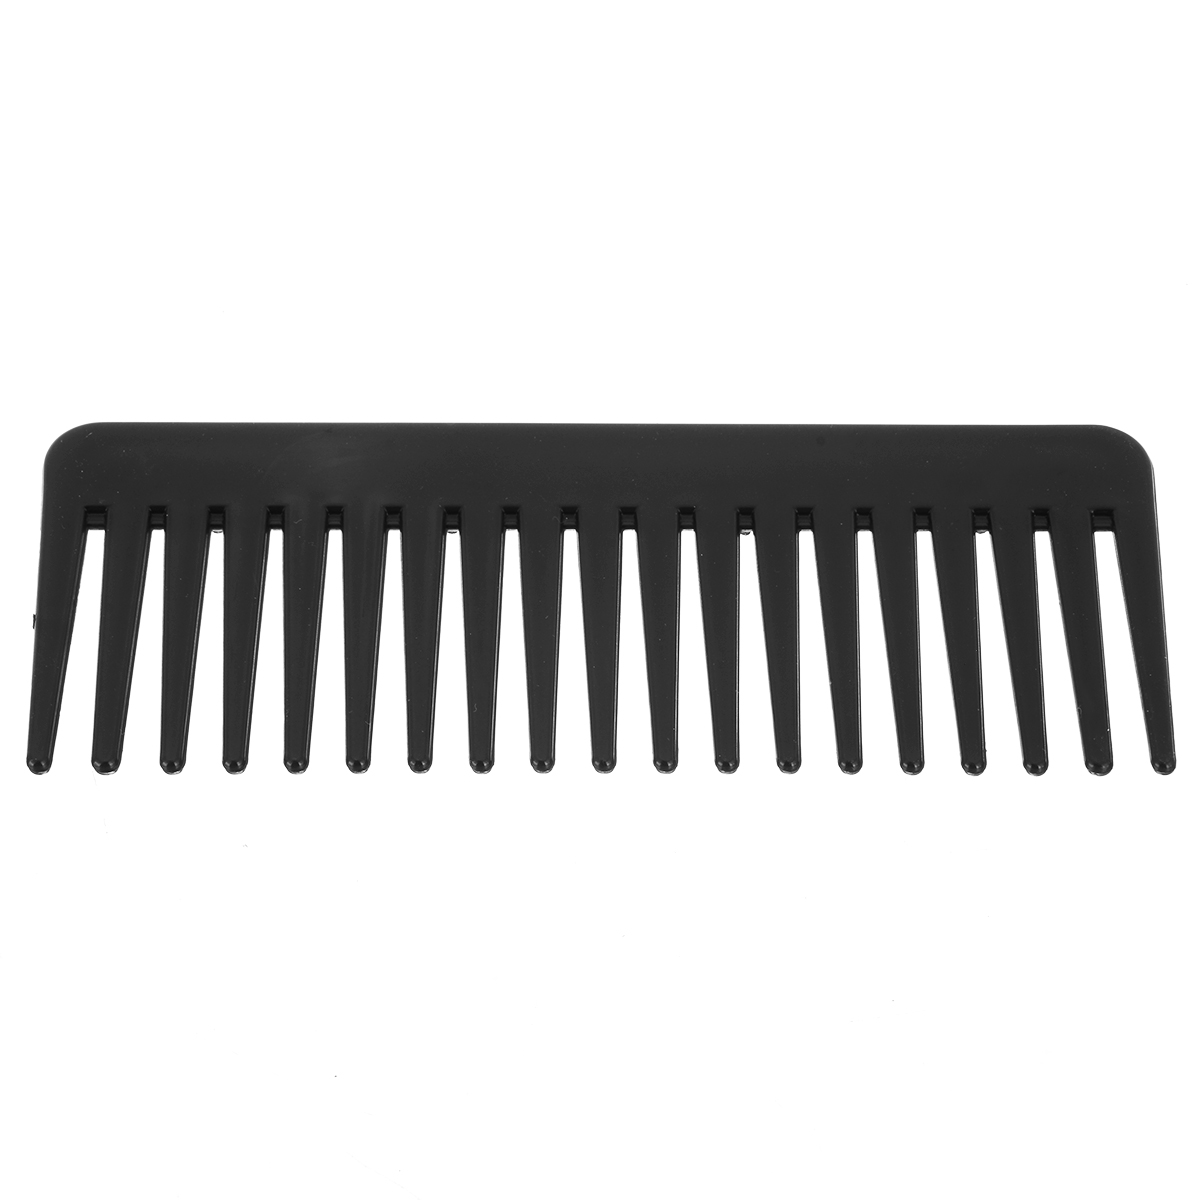 19 Teeth Wide Tooth Comb Black ABS Plastic Heat resistant Large Wide Tooth Comb For Hair Styling Tool in Combs from Beauty Health